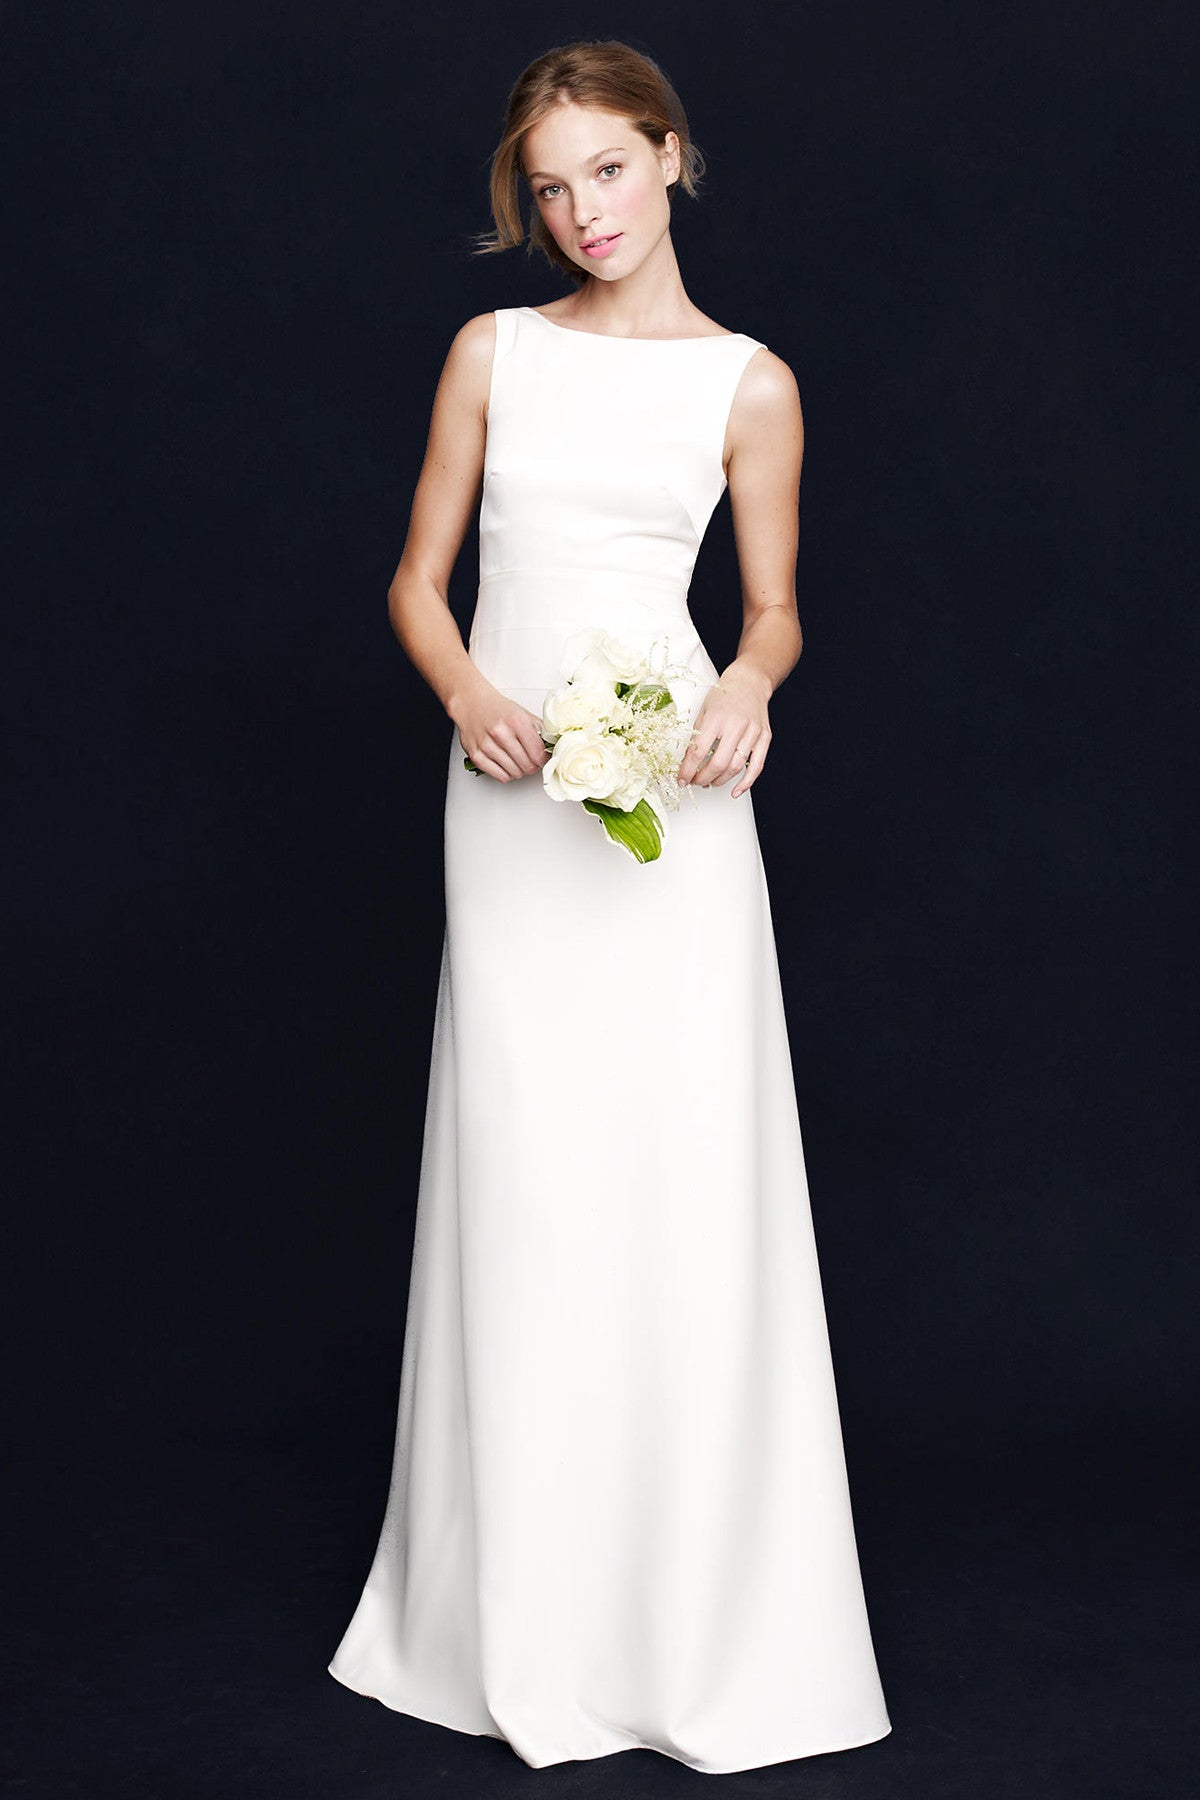 dc453c5c642 J. Crew Percy Wedding Gown - Adinas Bridal